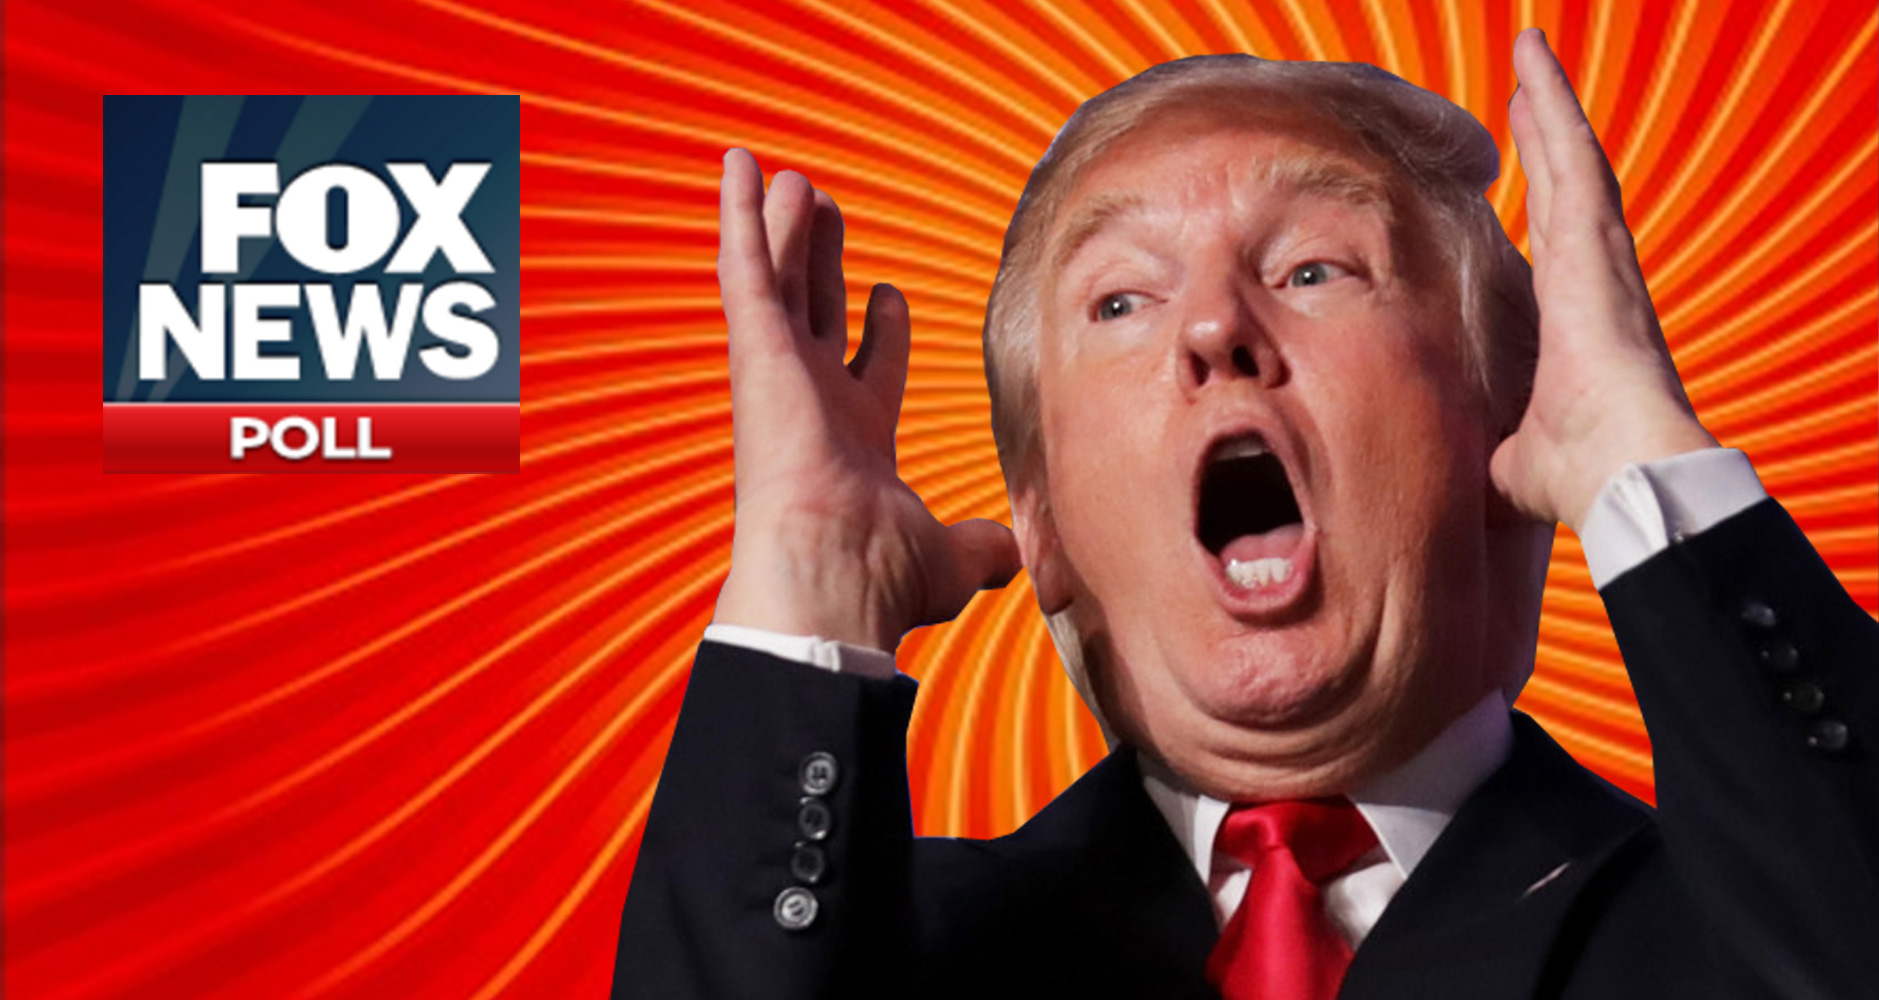 Trump Is Going To Flip Out When He Sees The Latest Fox News Poll